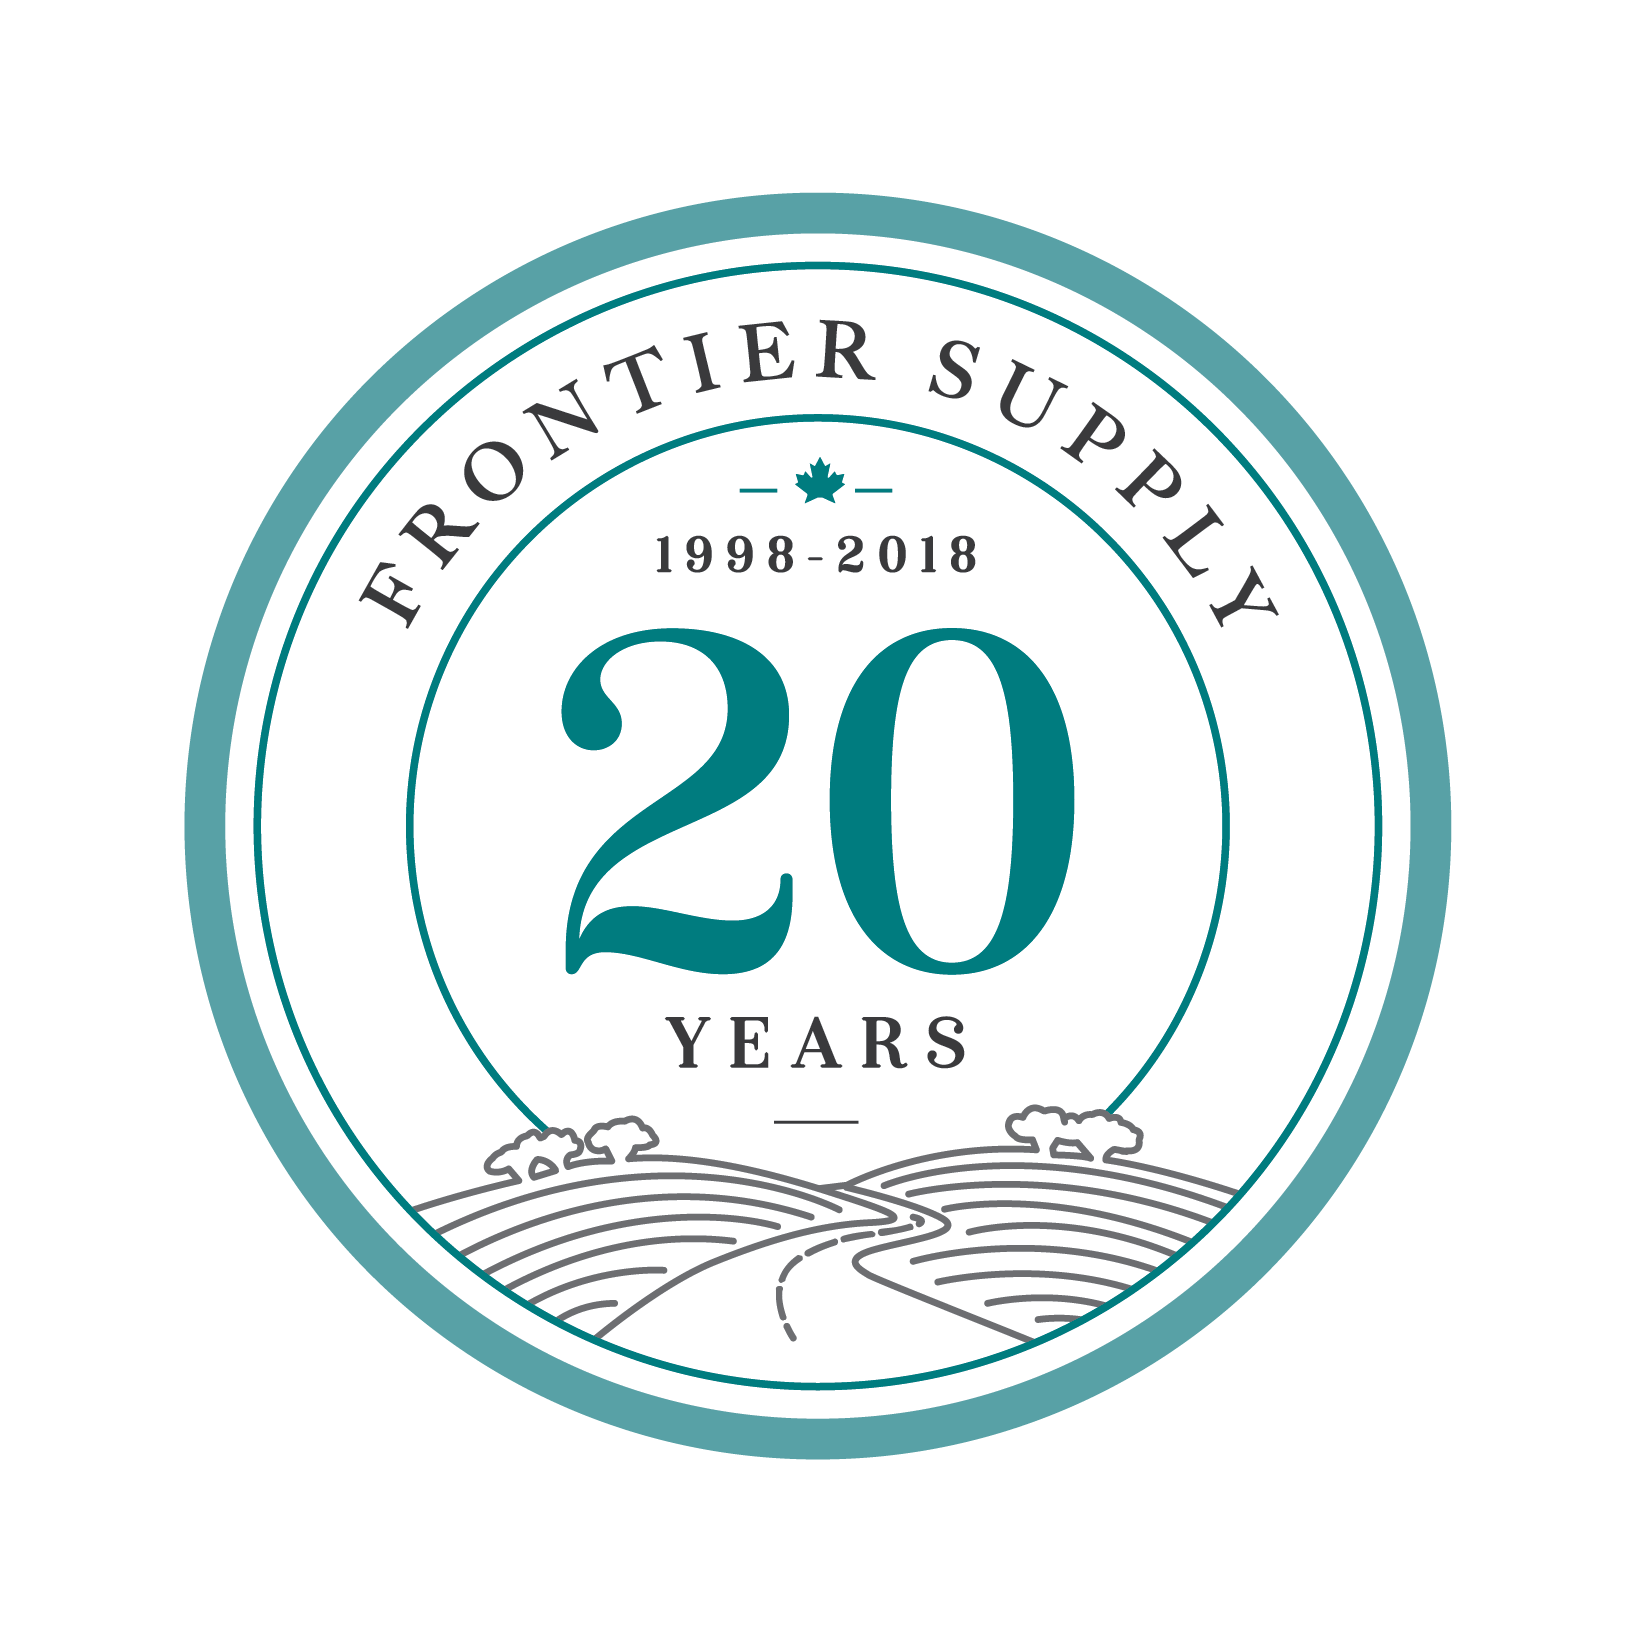 Frontier Supply 20thAnn logo-01